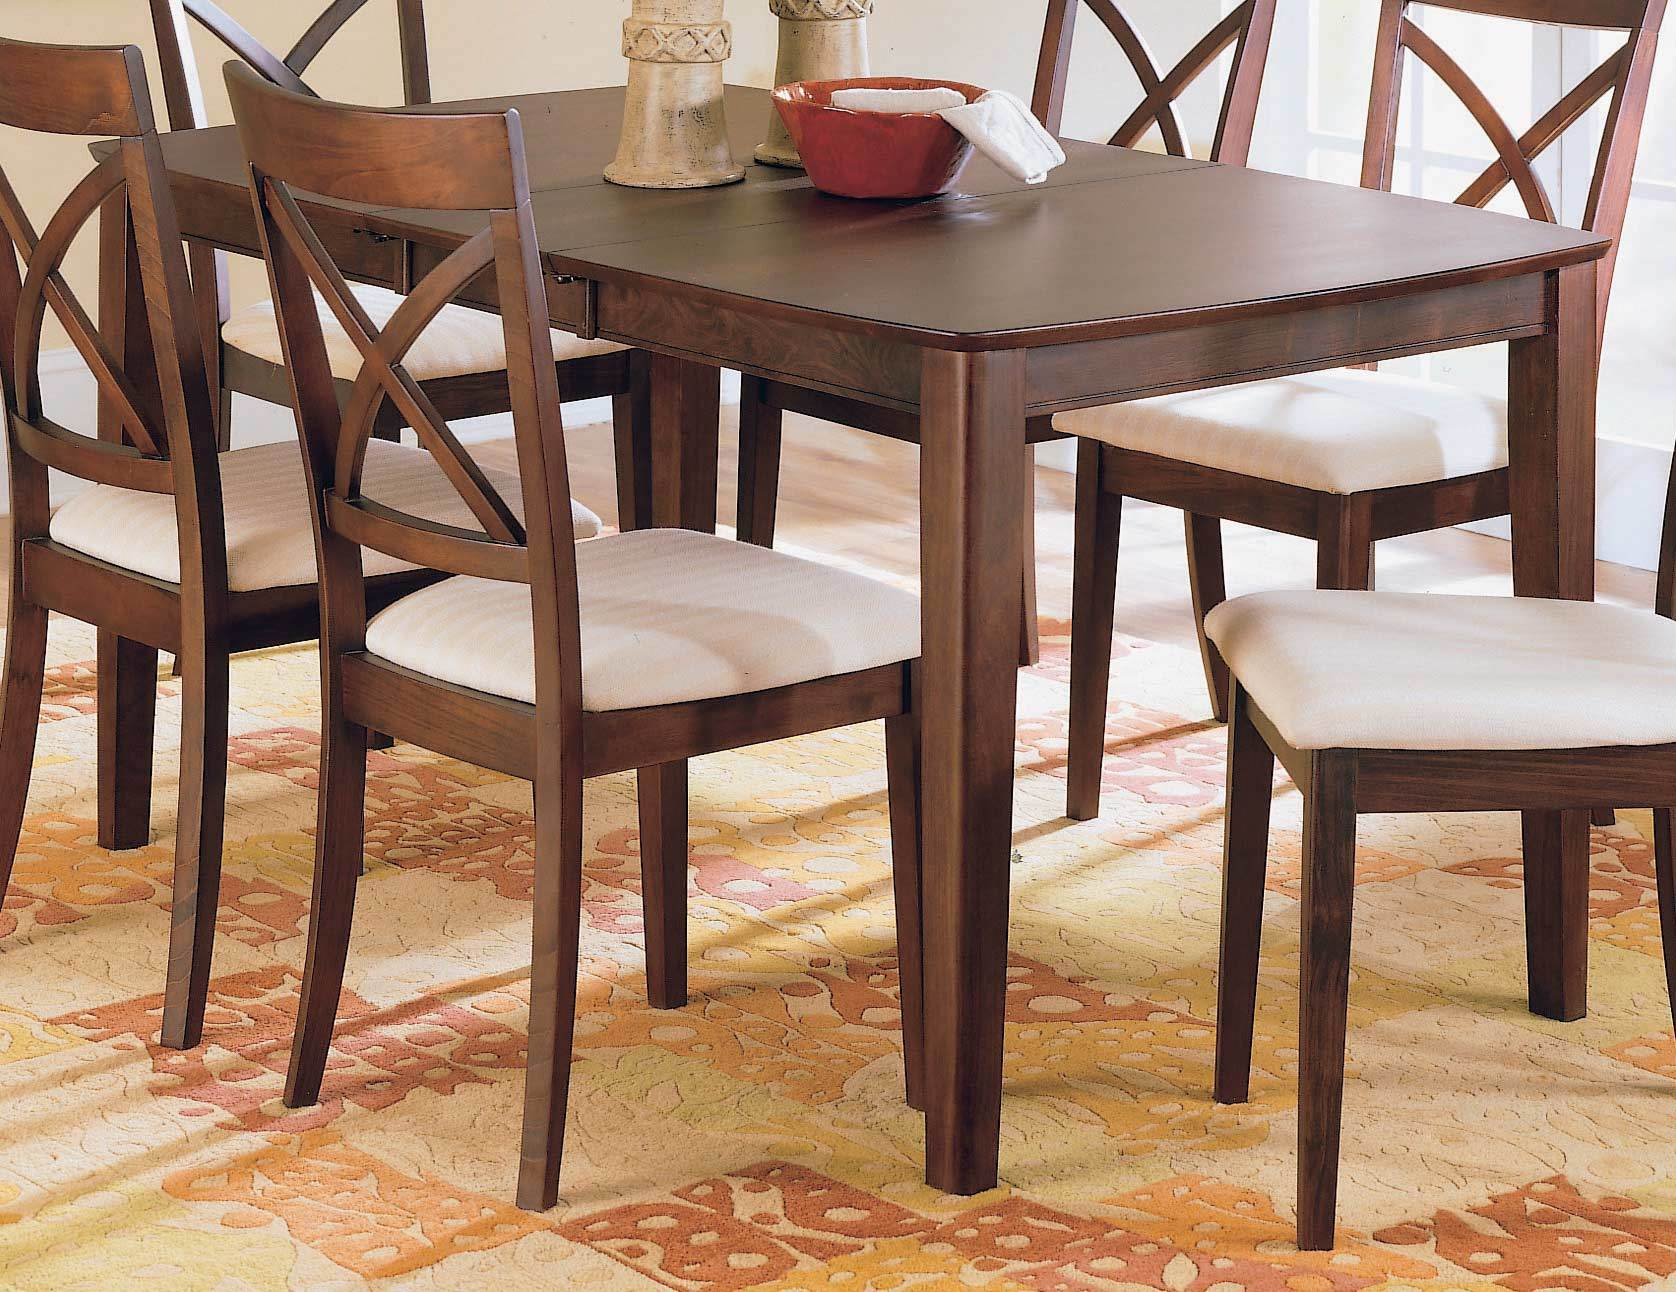 dining table dining table and chairs thailand On dining table and chairs